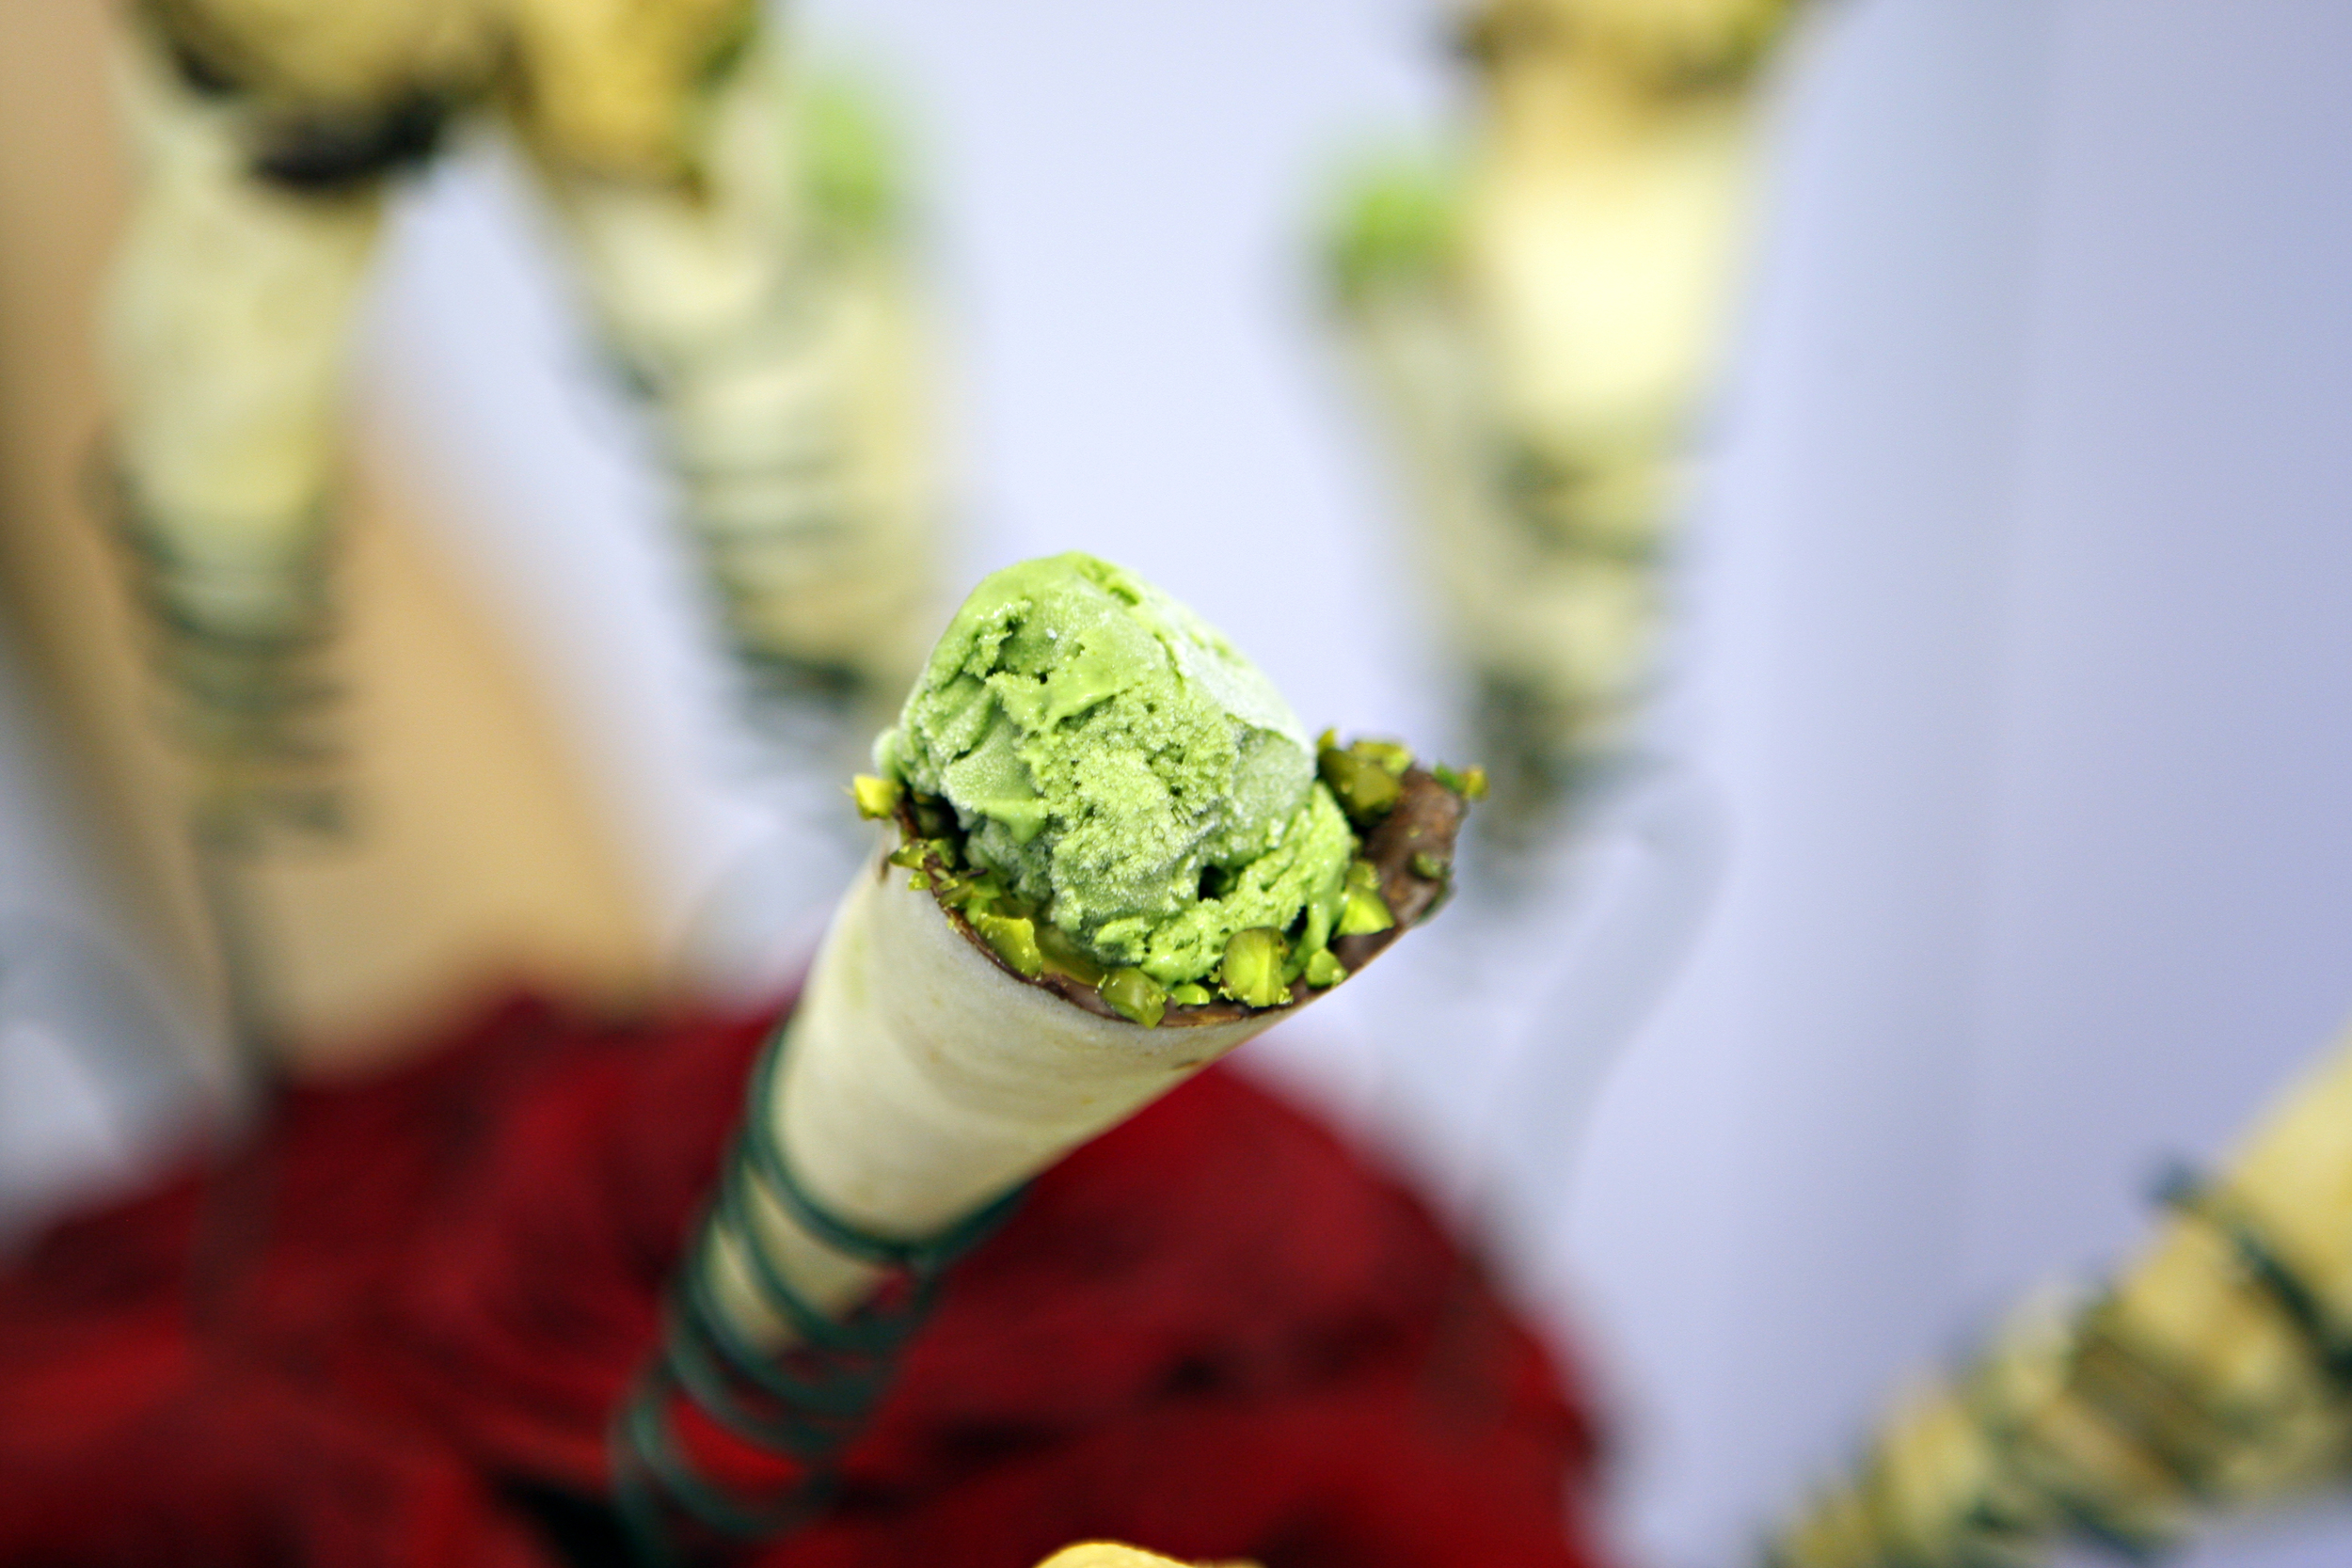 Pistachio ice cream with pistachio edged cones served in a bowl of flowers